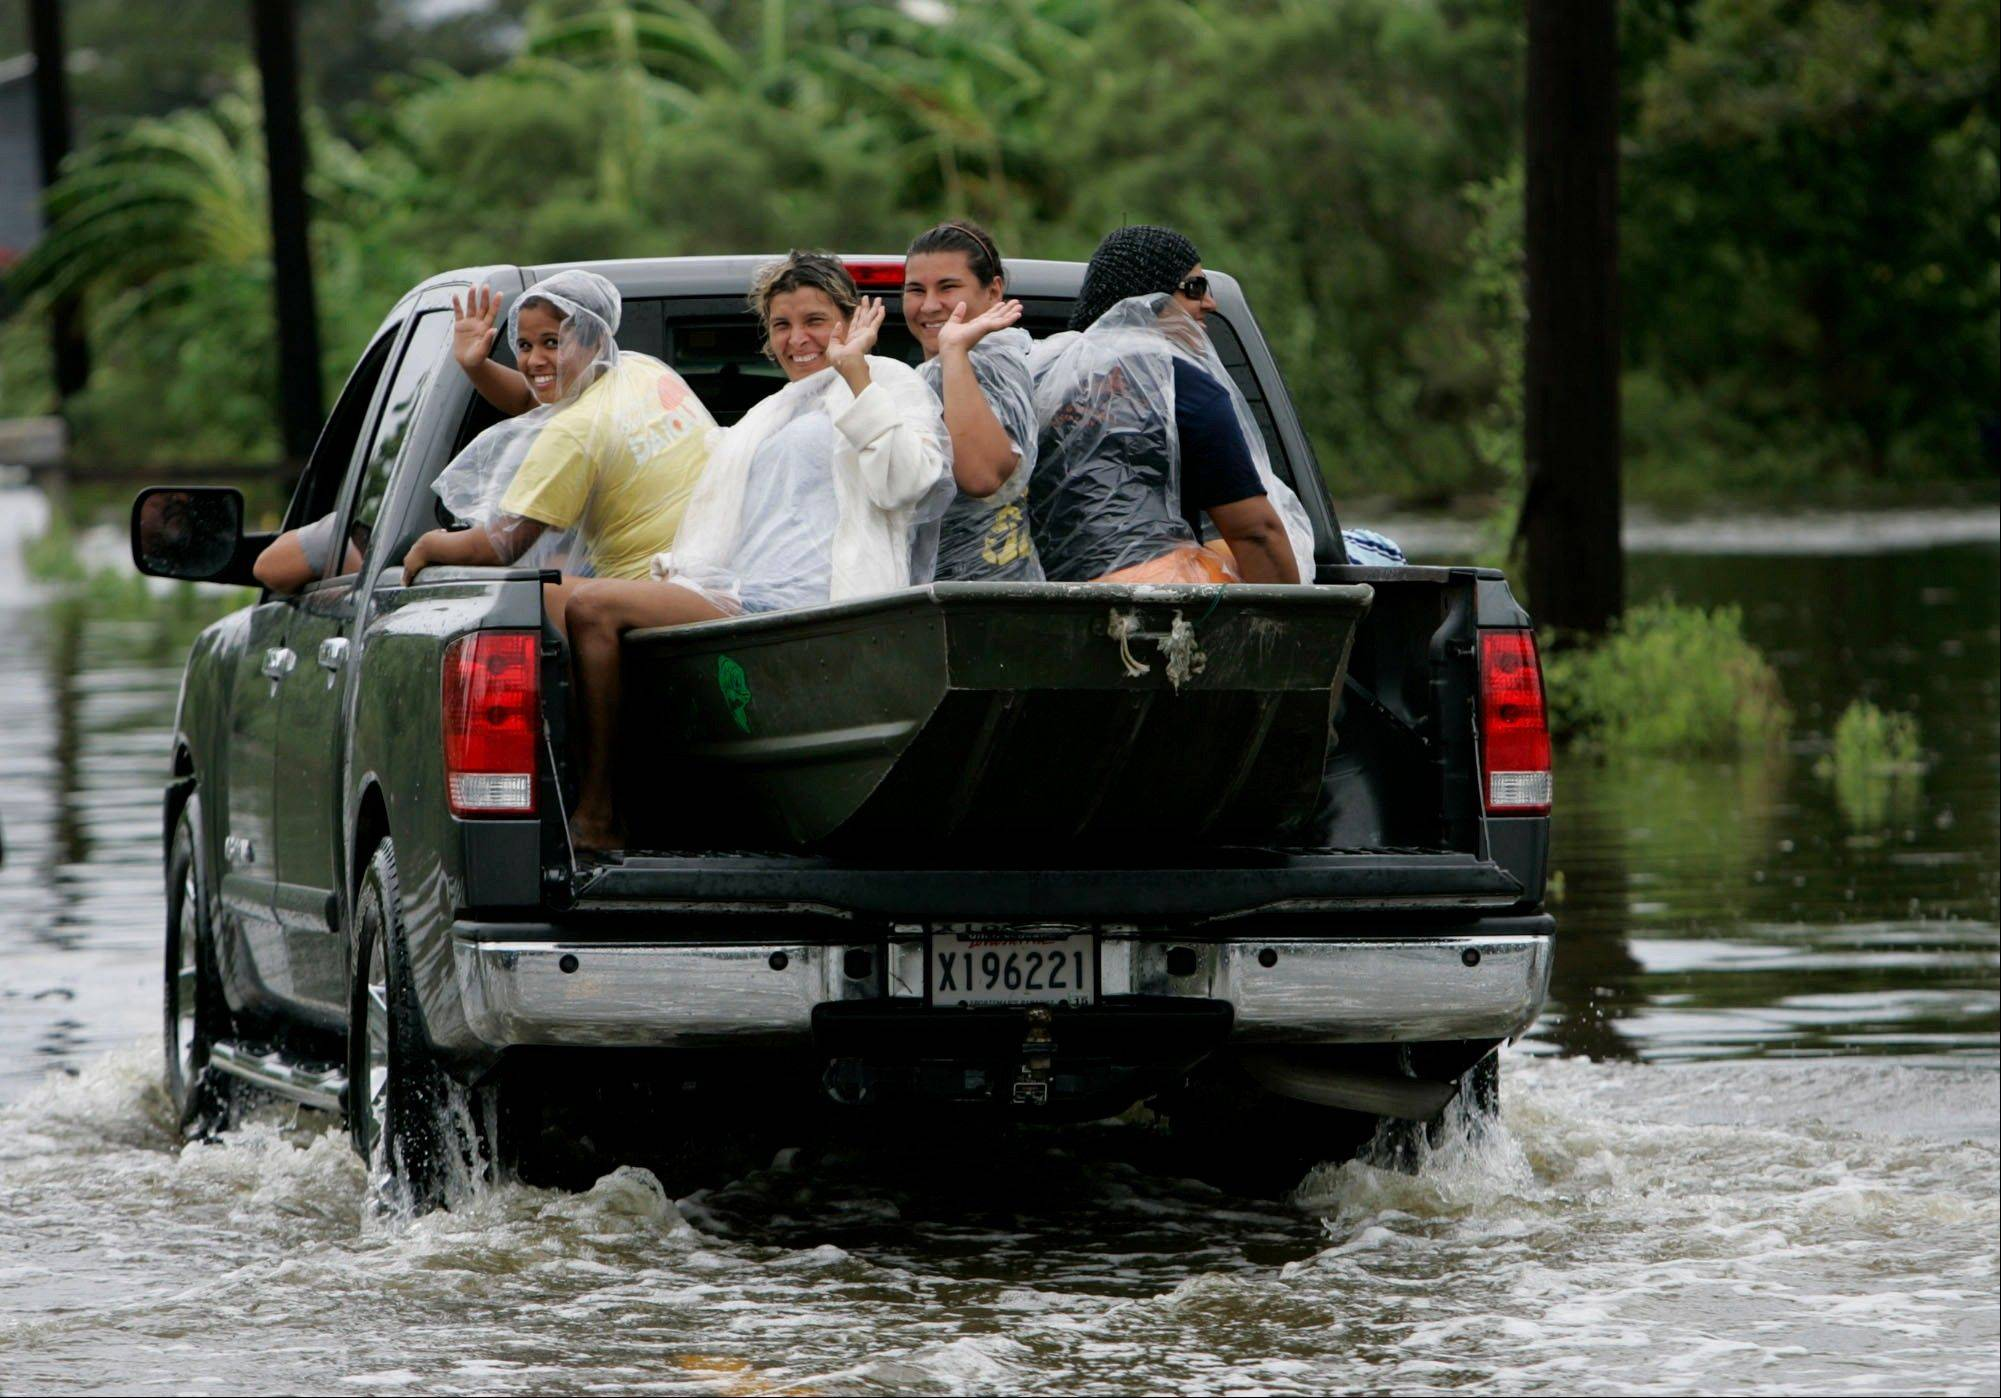 Residents of Dulac, La., ride through floodwater brought on by Tropical Storm Lee Sunday.